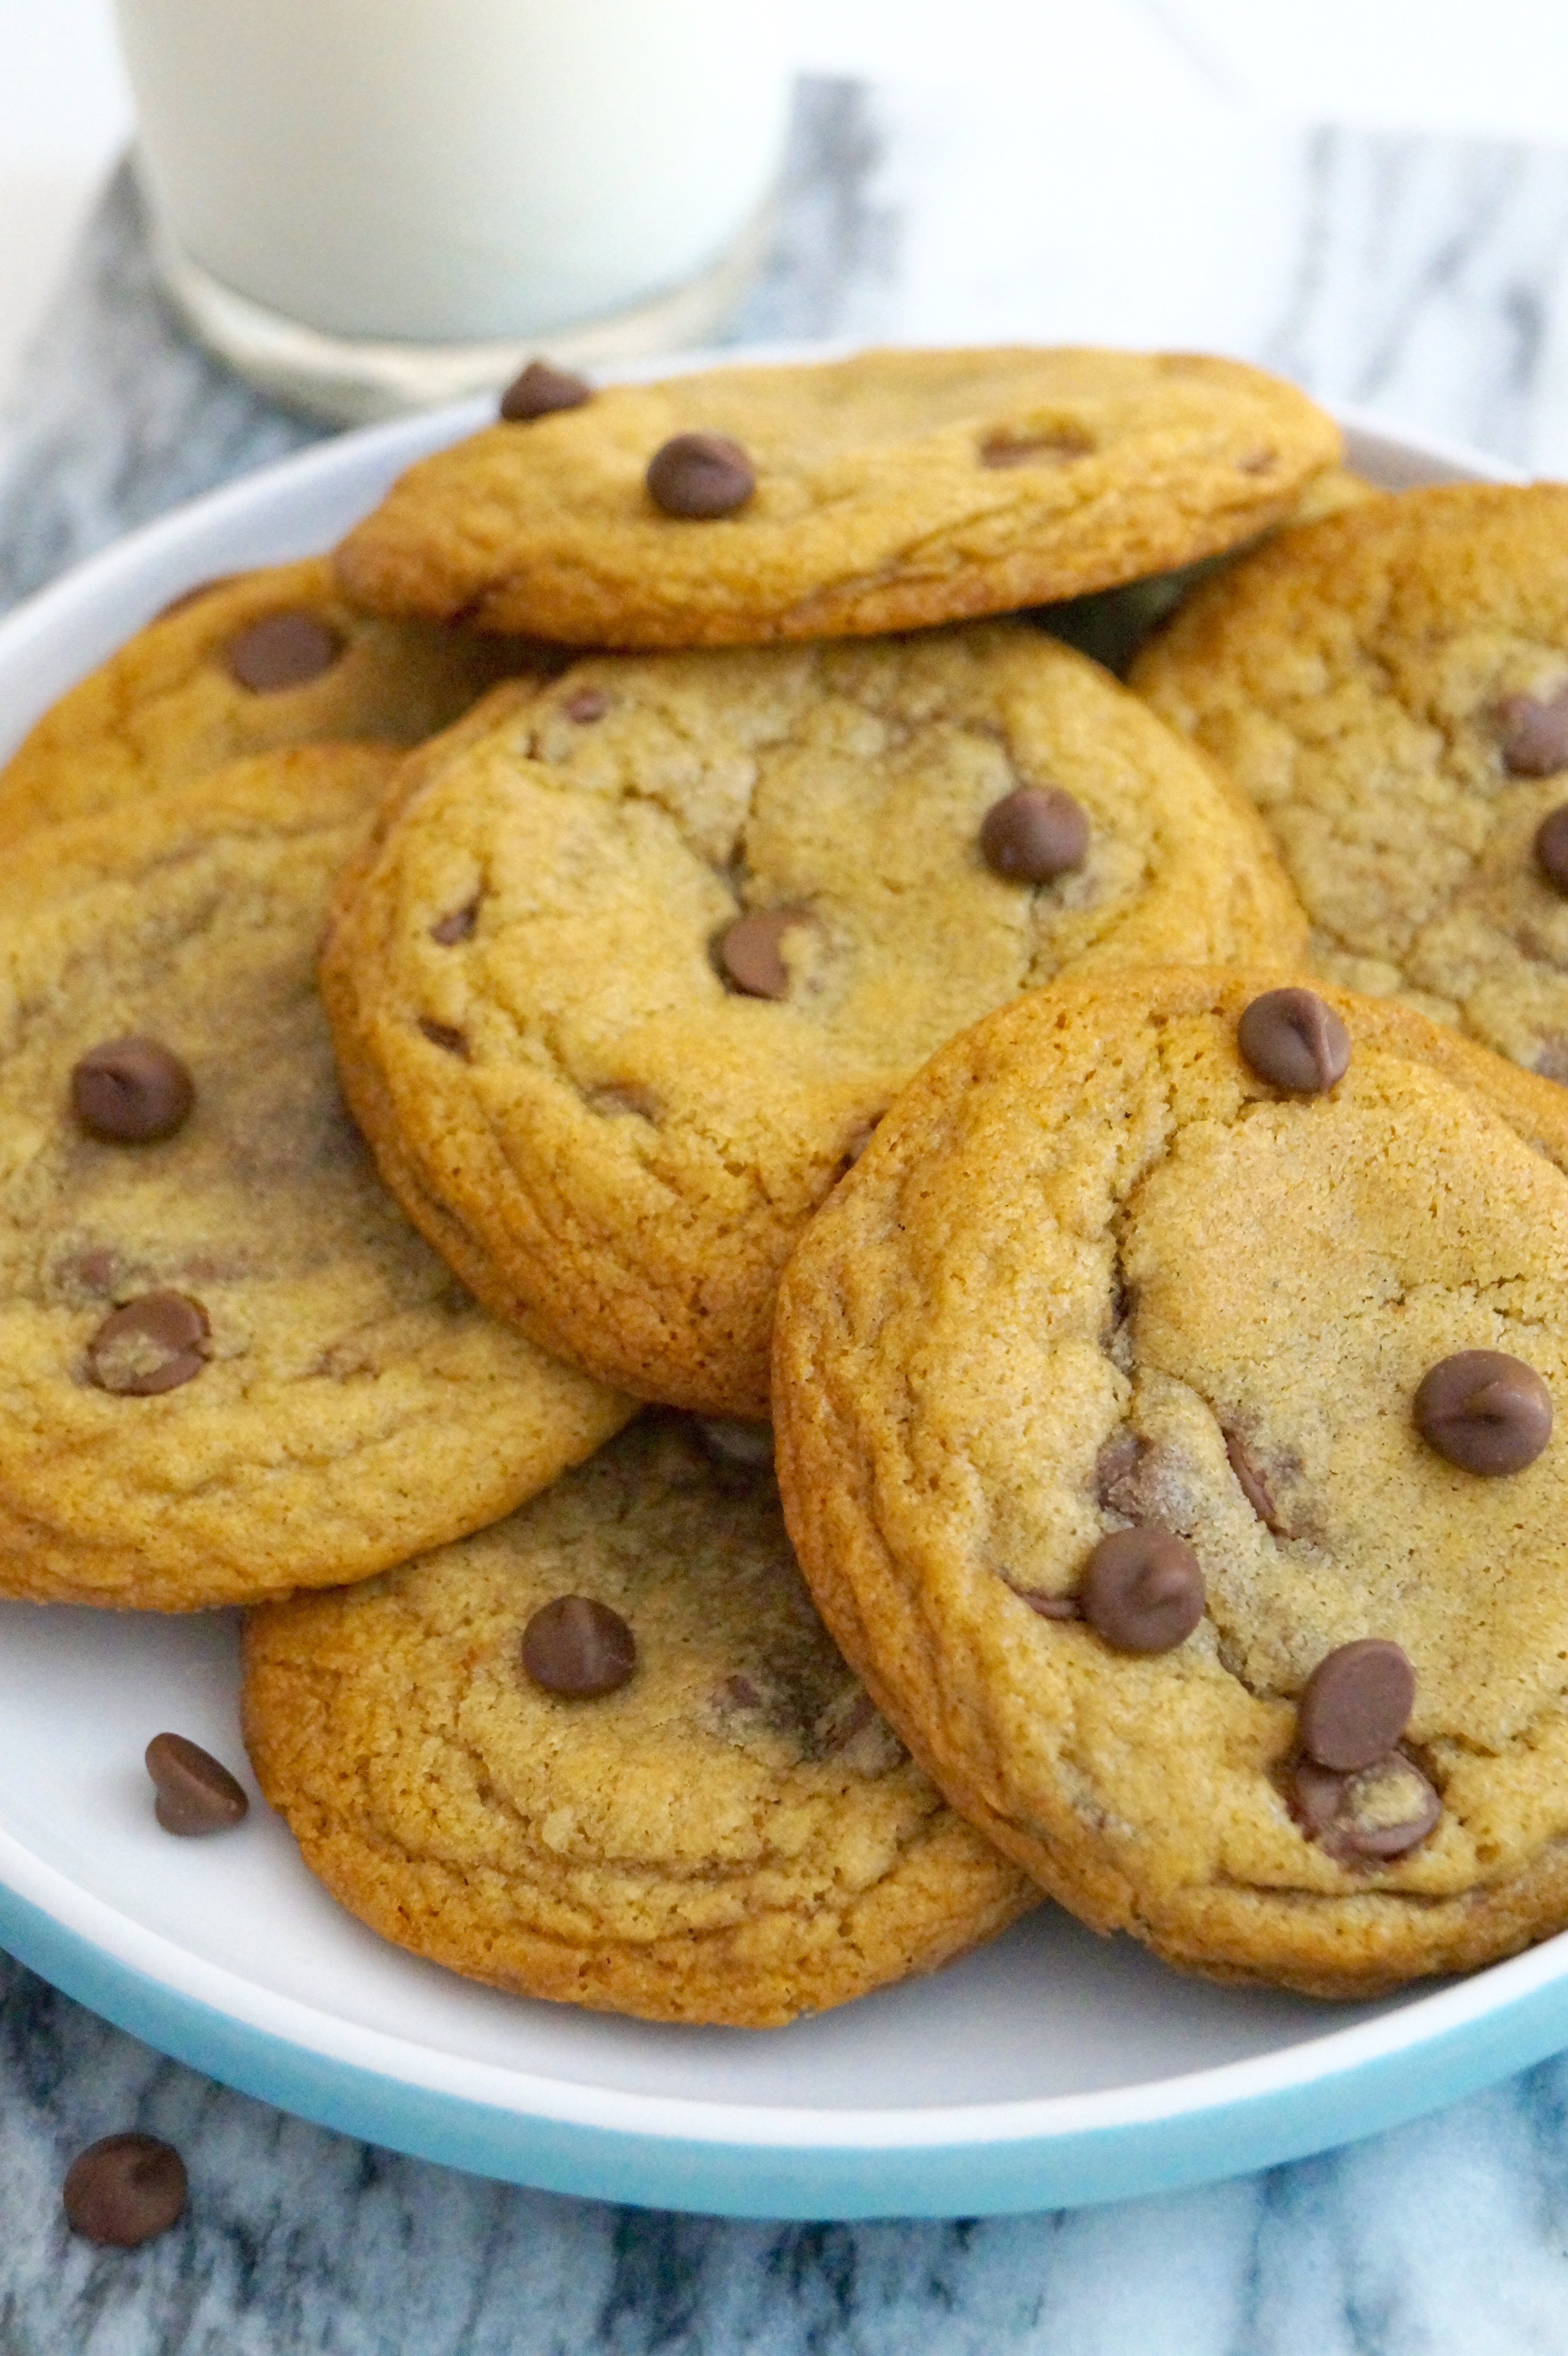 Cookies Are One Of My Food Guilty Pleasures I Love Going Back To Basics And I Thought It Was About Time Share My Go To Cookie Recipe Jam Packed Full Of